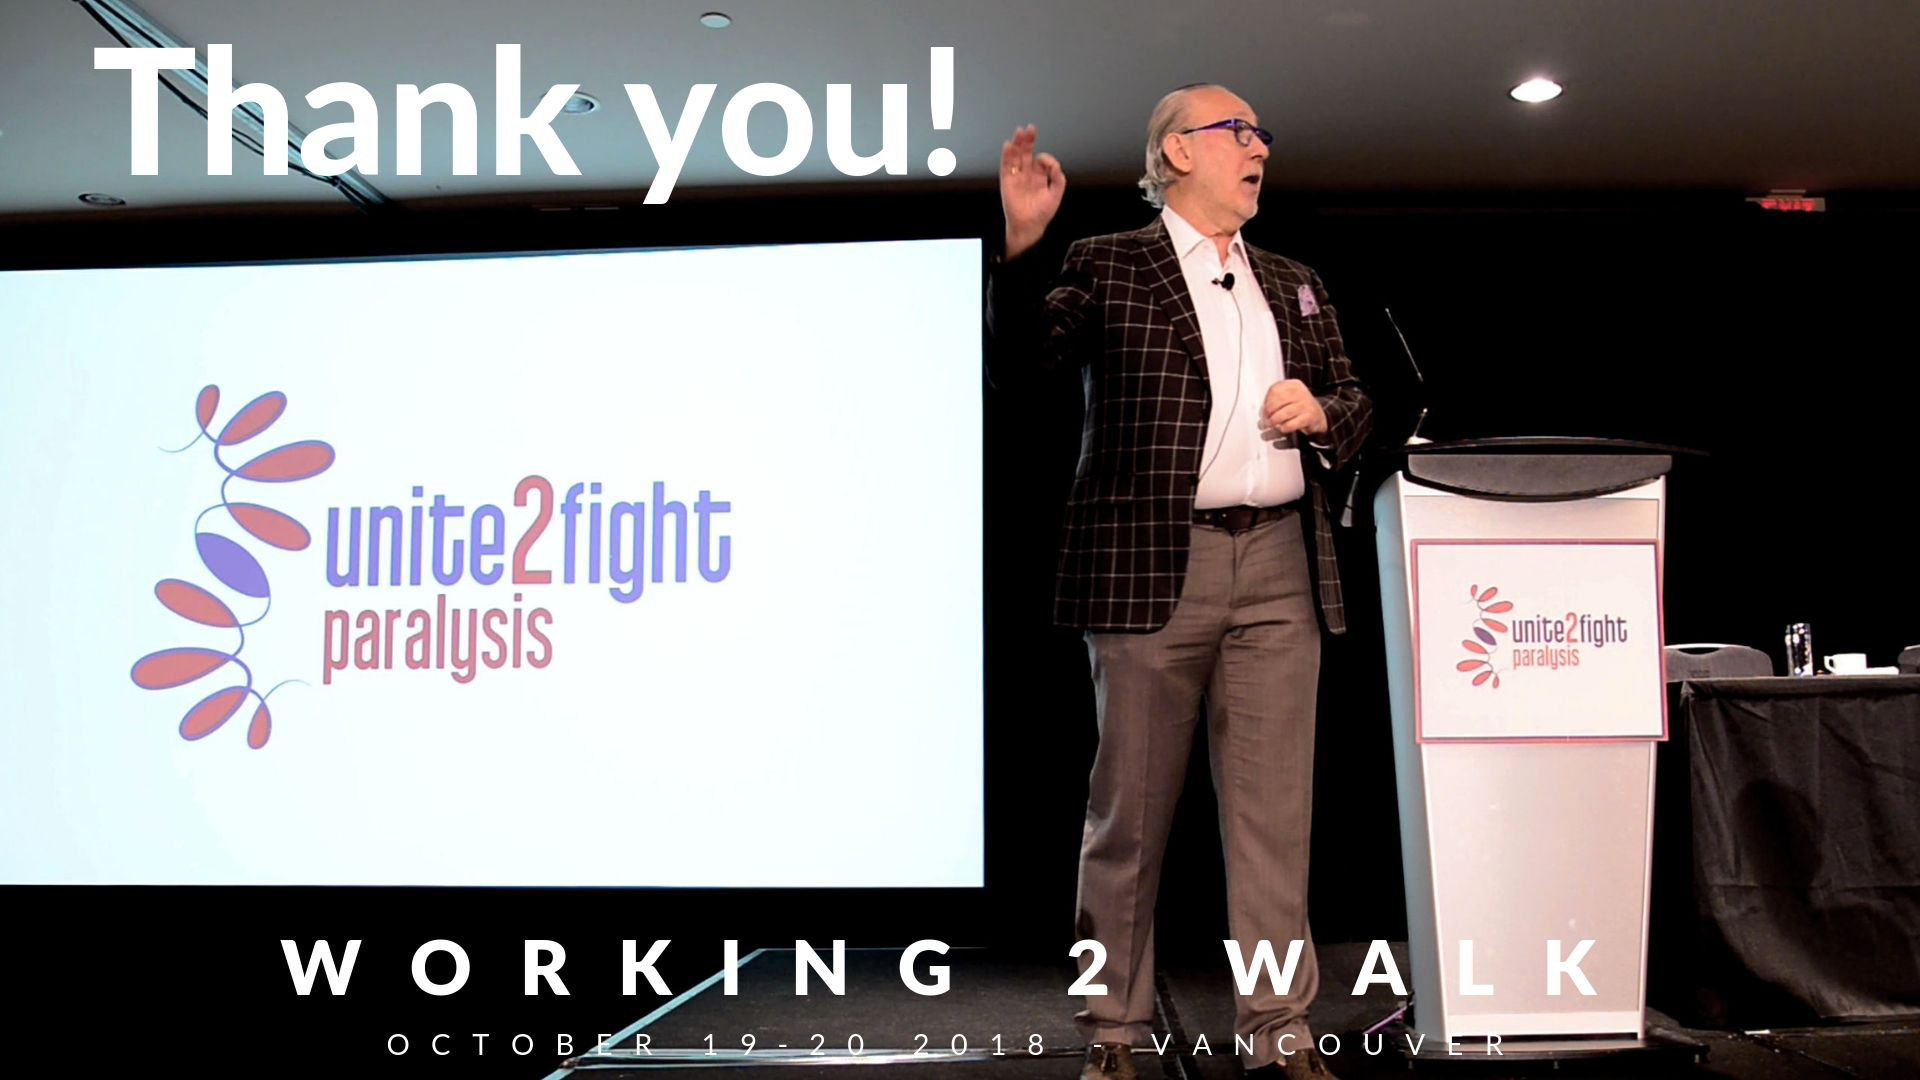 Working 2 Walk 2018 - Thank You!